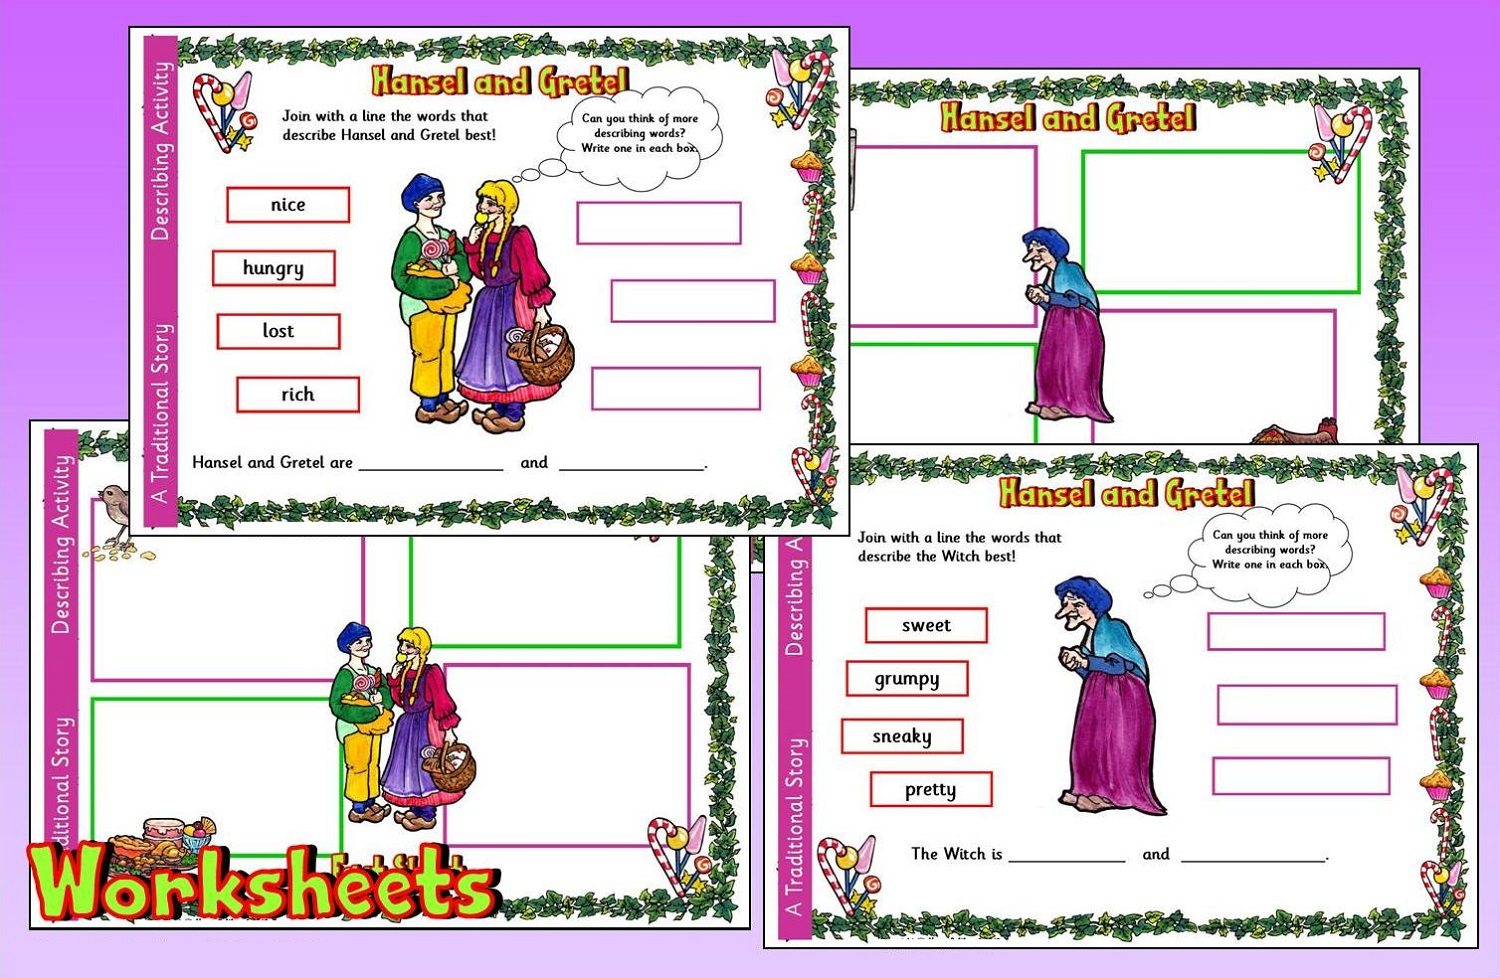 hansel and gretel worksheets activity